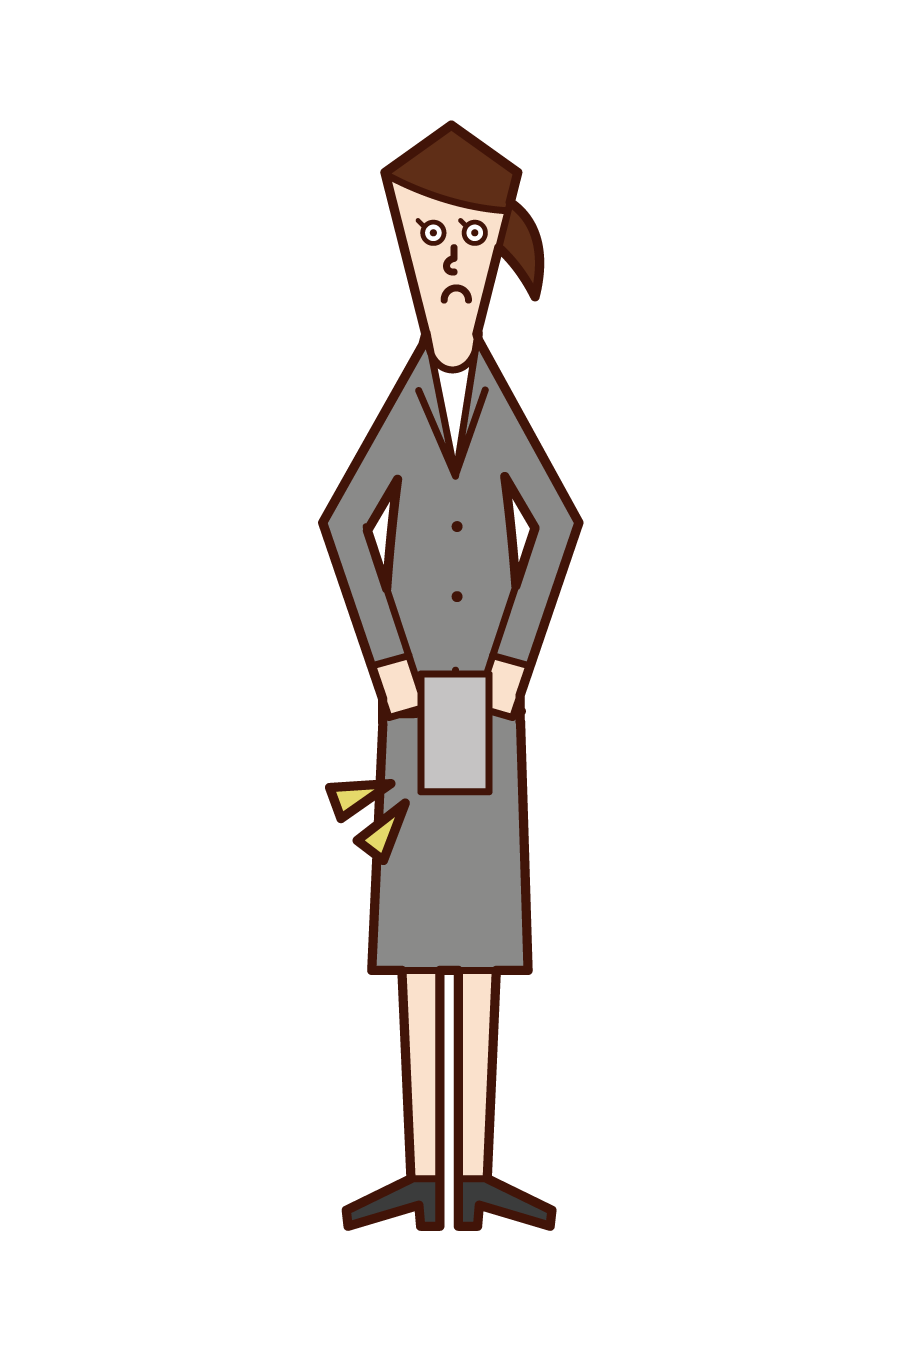 Illustration of the person (woman) who submits her resignation